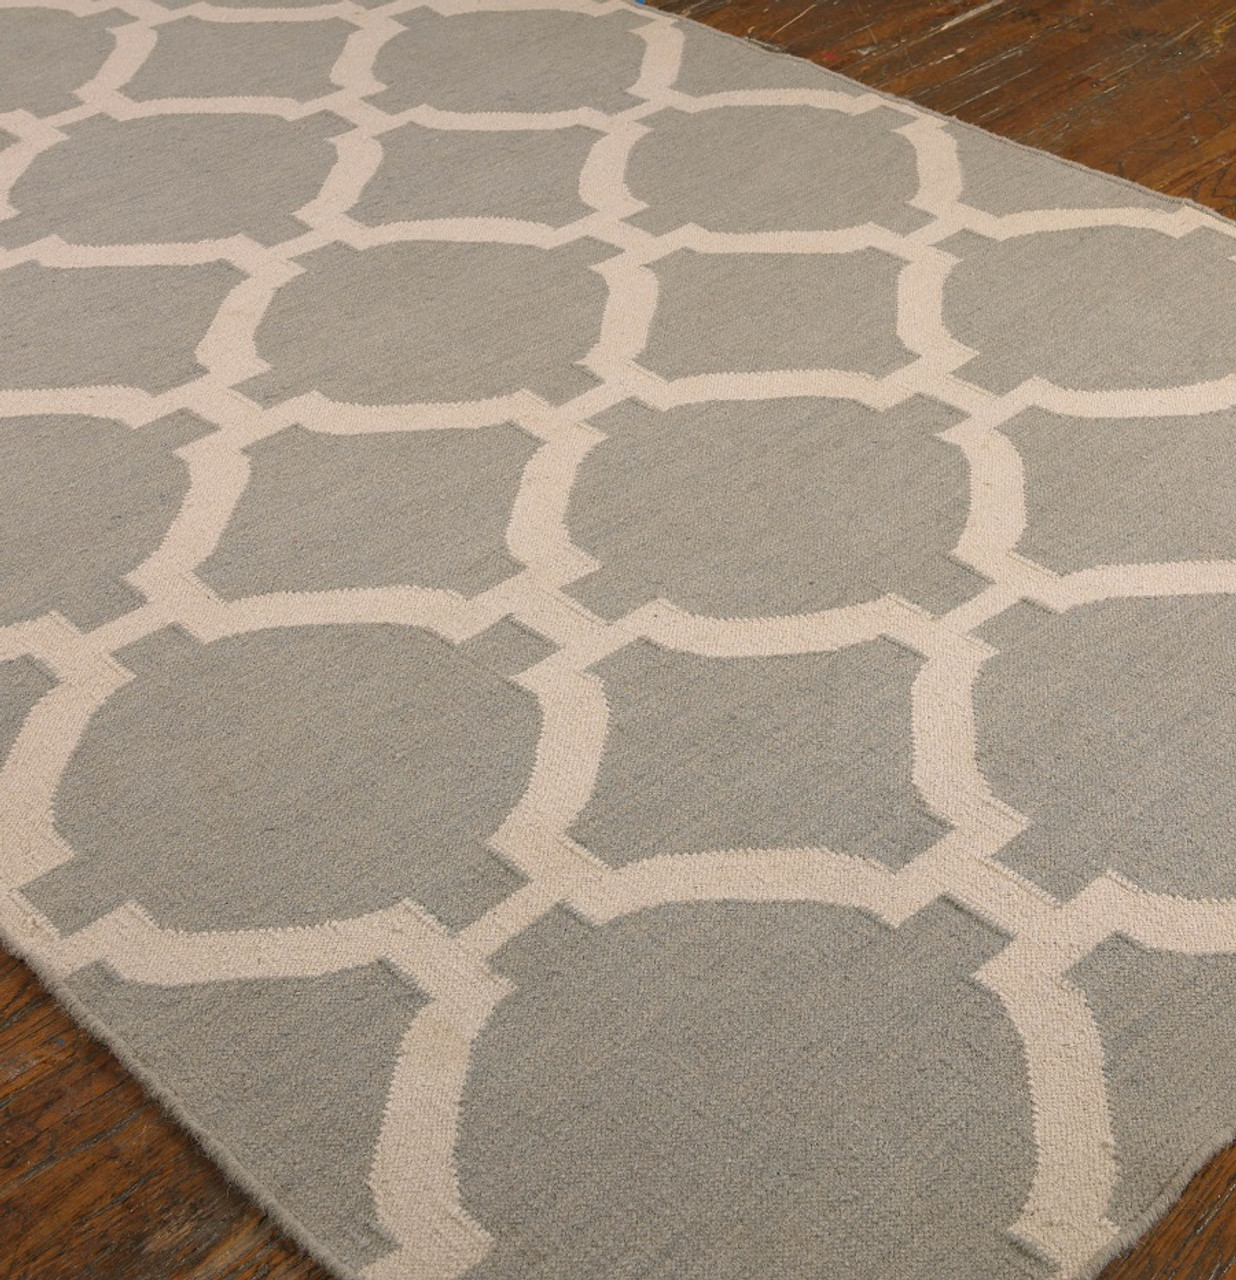 m rug gray jenica and teal